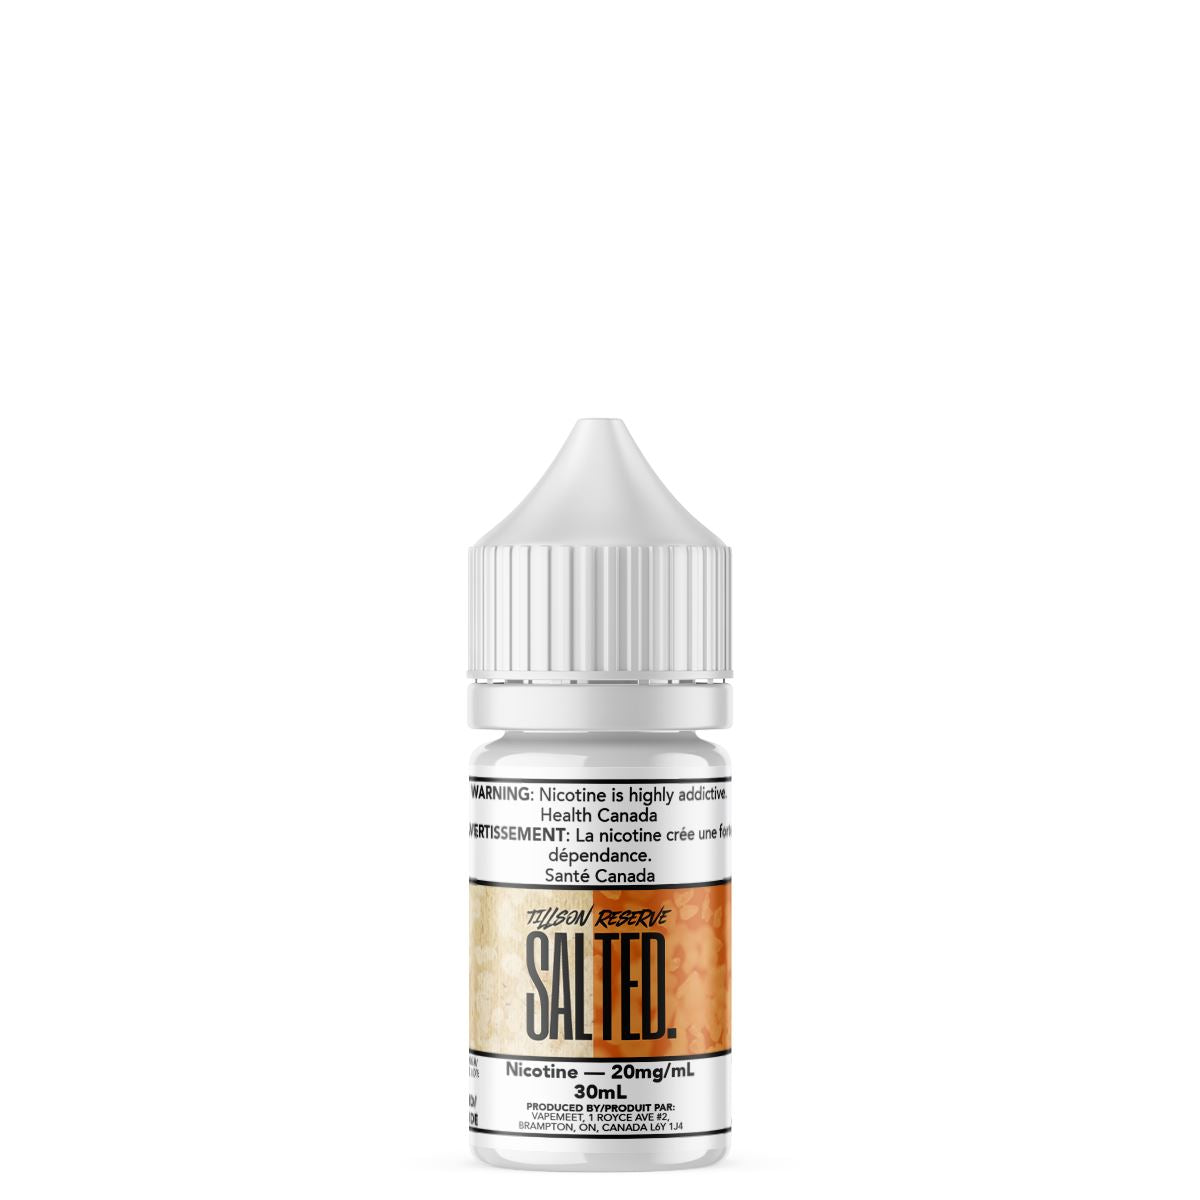 Salted. - Tillson Reserve E-Liquid Salted. 30mL 20 mg/mL